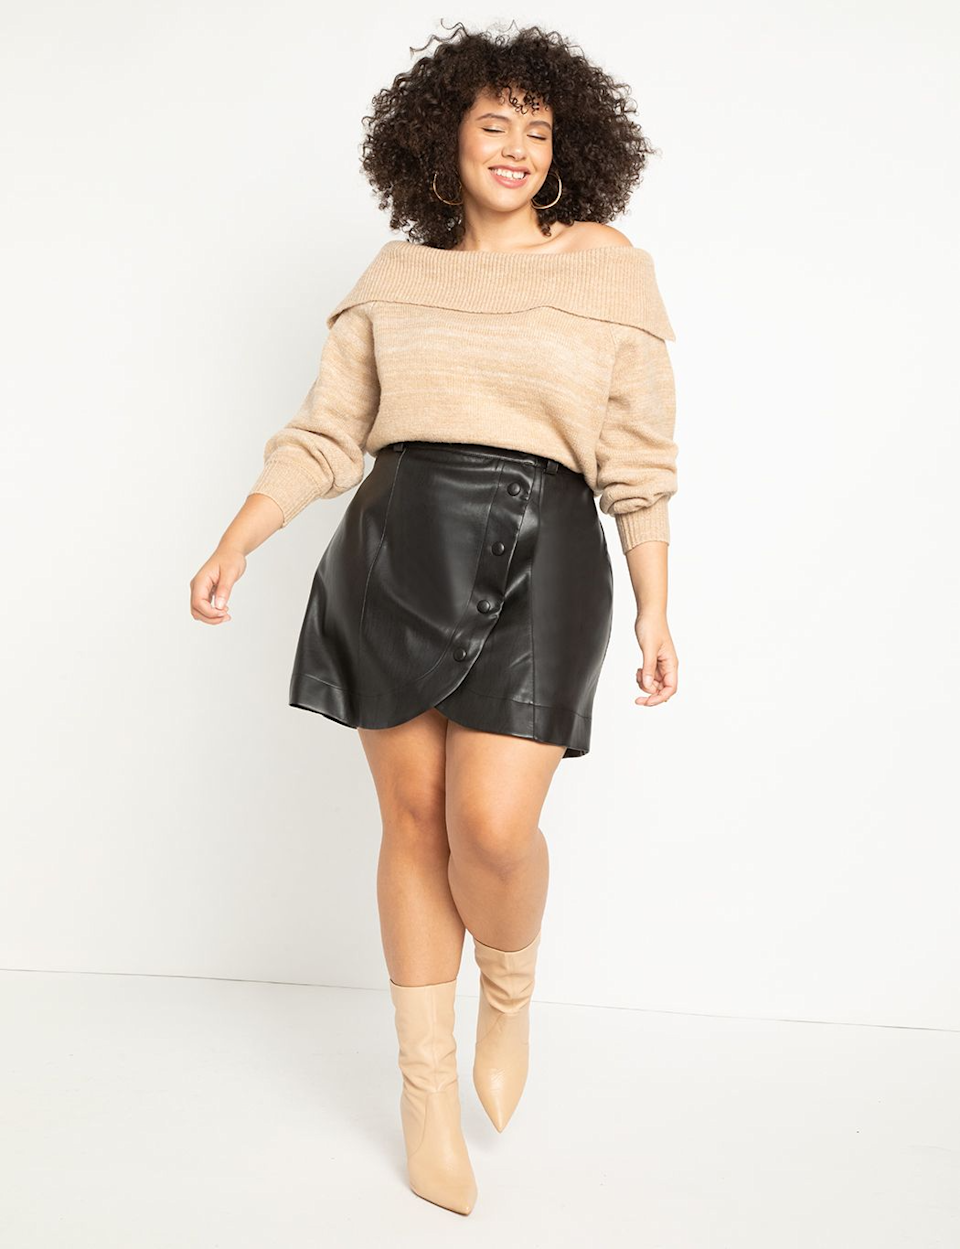 """<br><br><strong>Eloquii</strong> Faux Leather Mini Skirt, $, available at <a href=""""https://go.skimresources.com/?id=30283X879131&url=https%3A%2F%2Fwww.eloquii.com%2Ffaux-leather-mini-skirt%2F1206156.html"""" rel=""""nofollow noopener"""" target=""""_blank"""" data-ylk=""""slk:Eloquii"""" class=""""link rapid-noclick-resp"""">Eloquii</a>"""